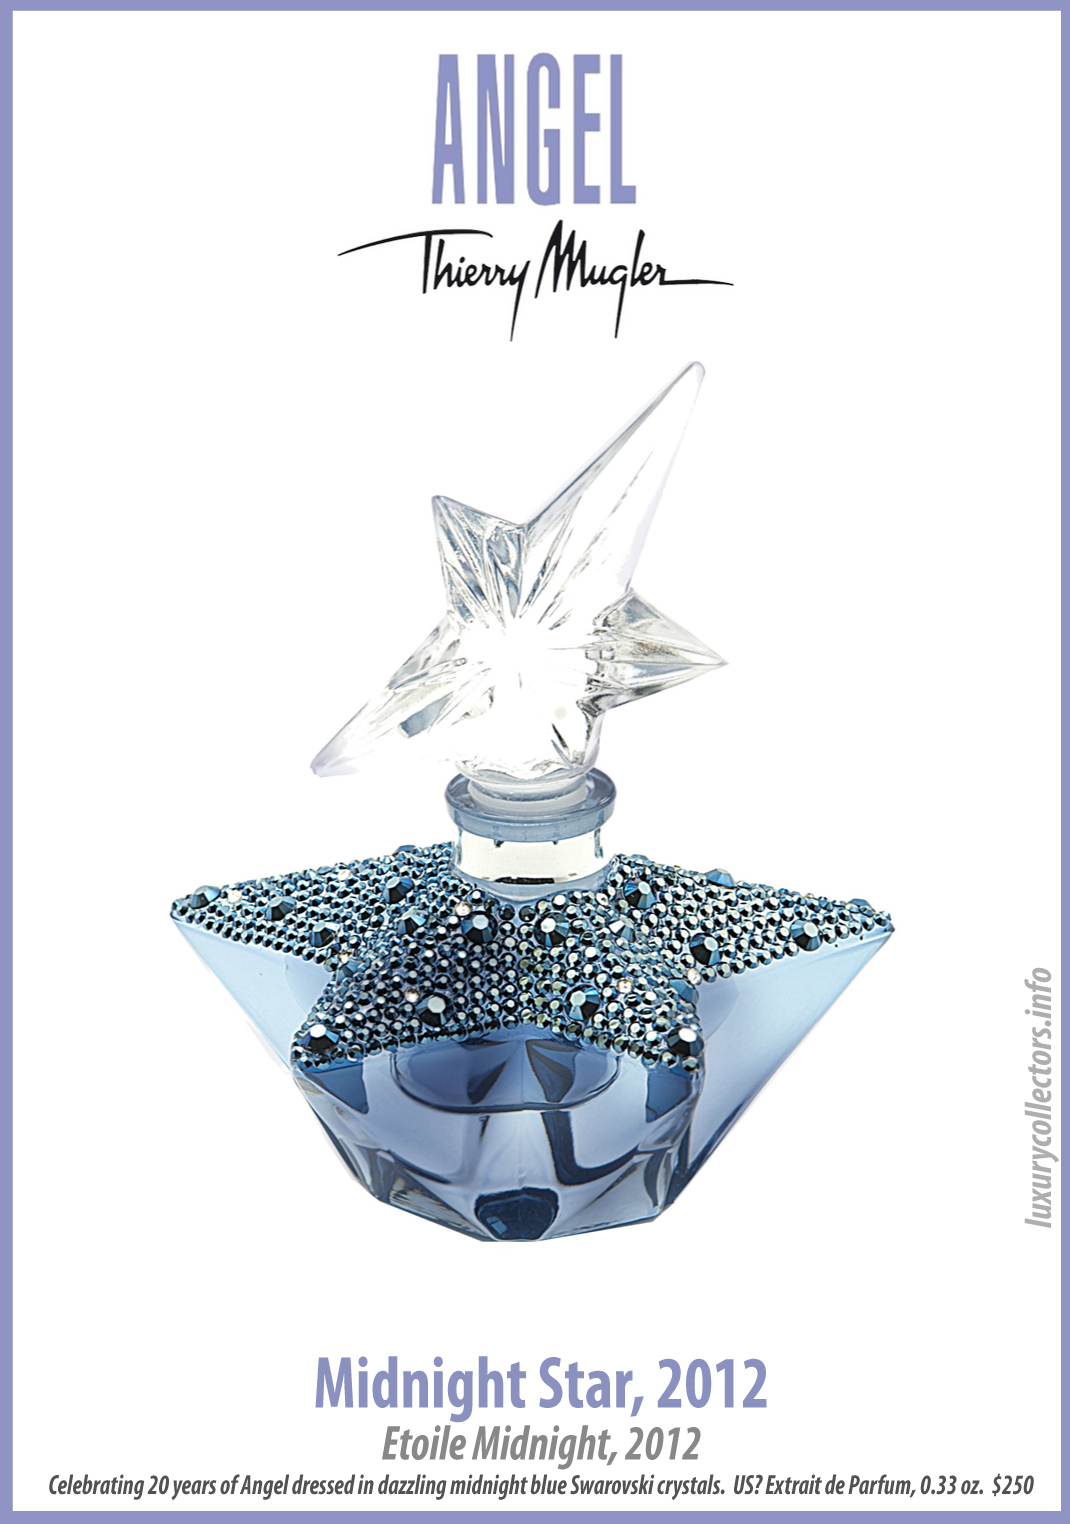 Thierry Mugler Angel 20 Years Perfume Collector's Limited Edition Bottle 2012 Midnight Star